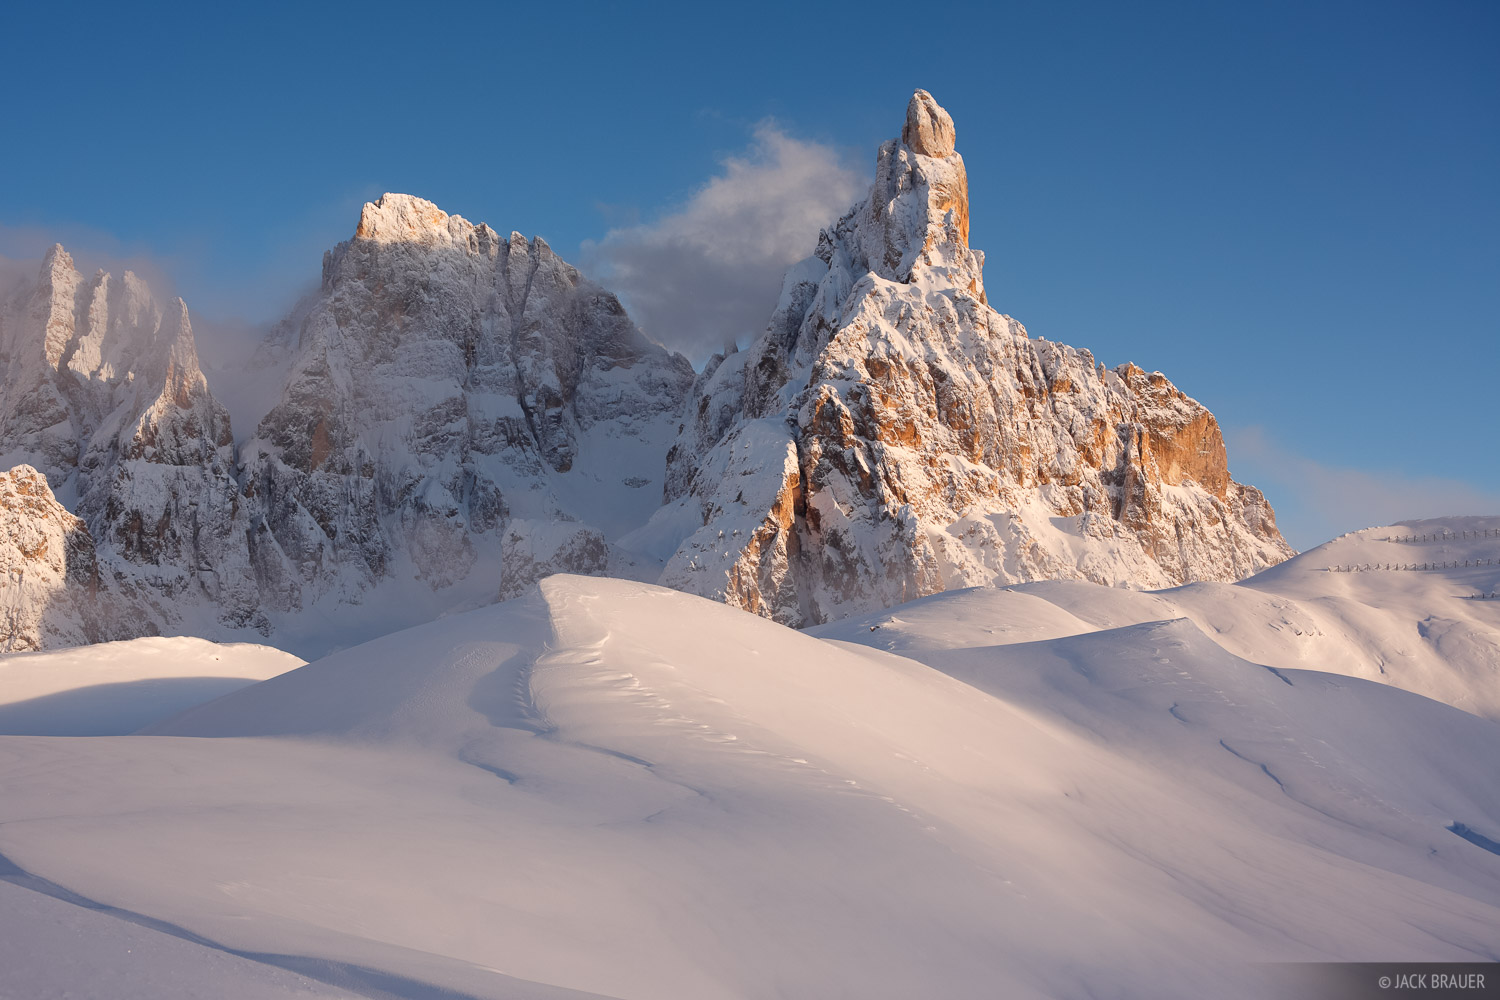 Late afternoon light on snowy Cimon della Pala, as storm clouds clear off - December.